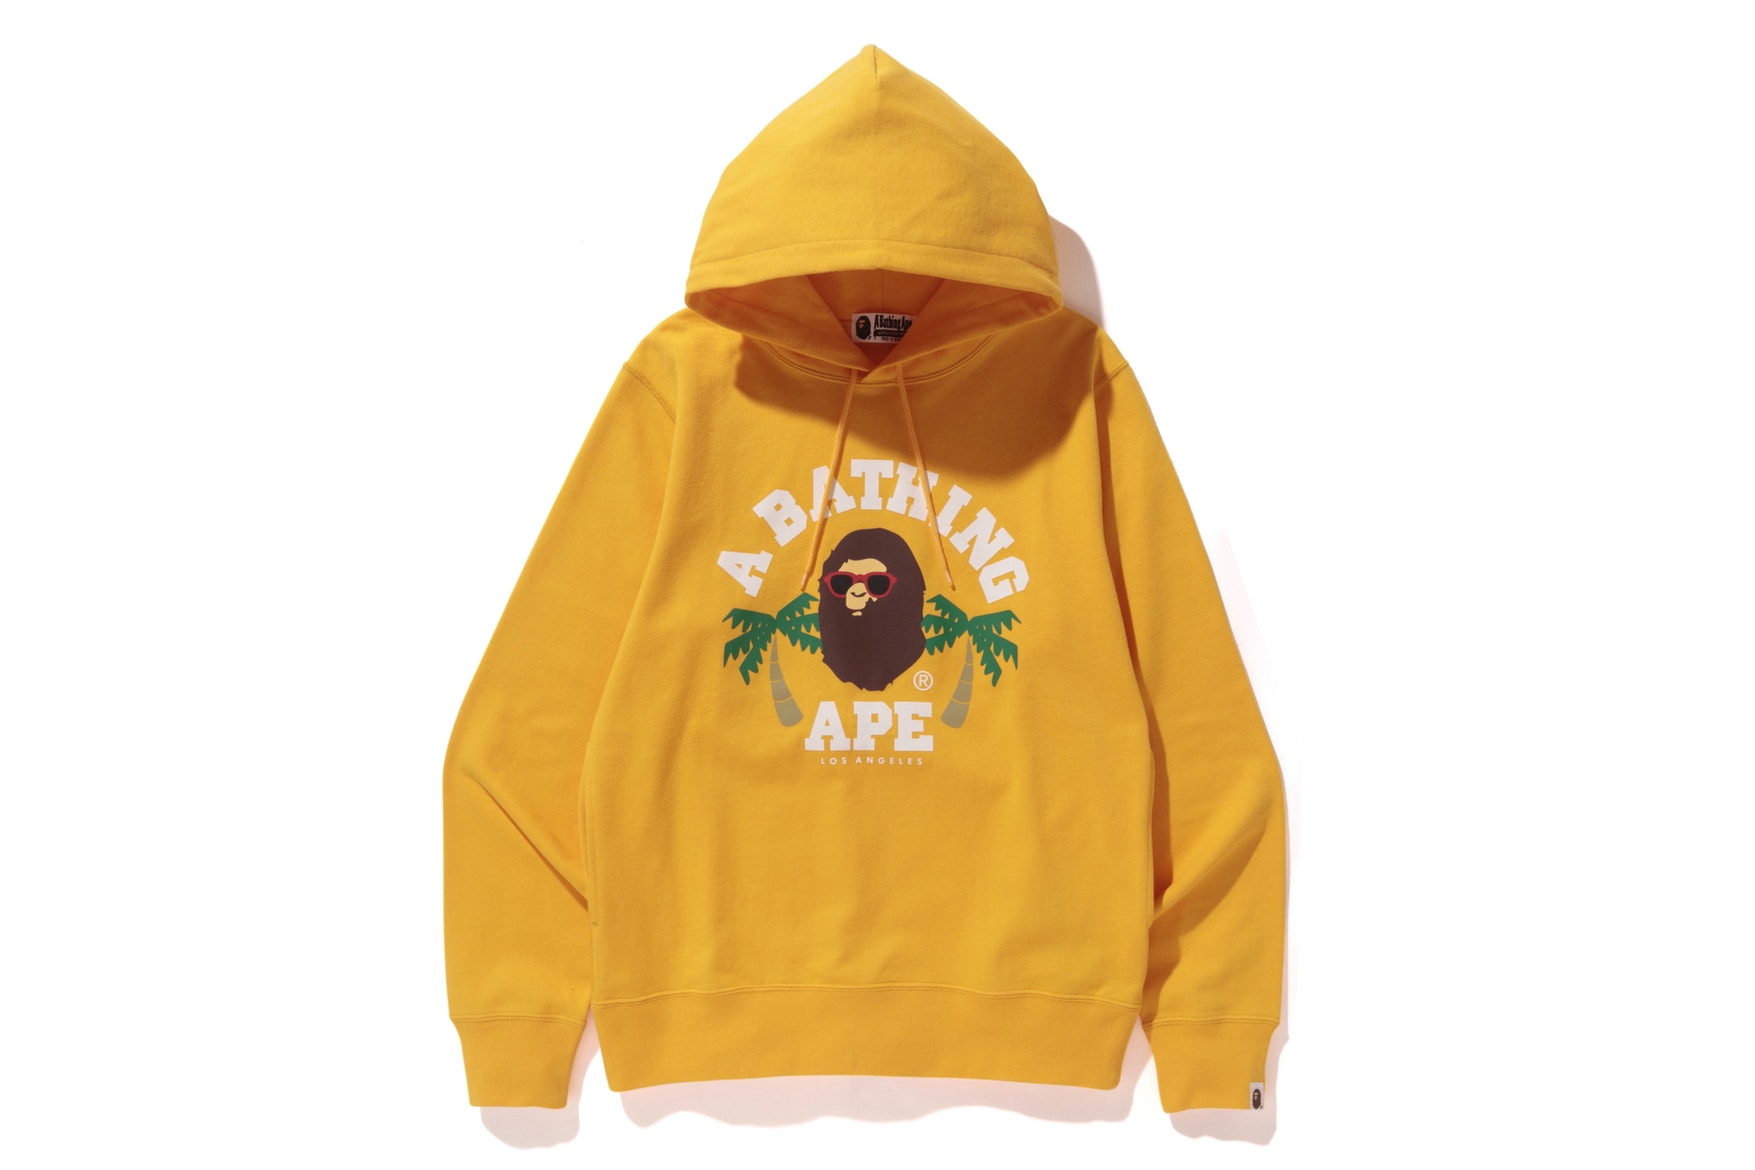 bape-a-bathing-ape-la-capsule-lookbook-49